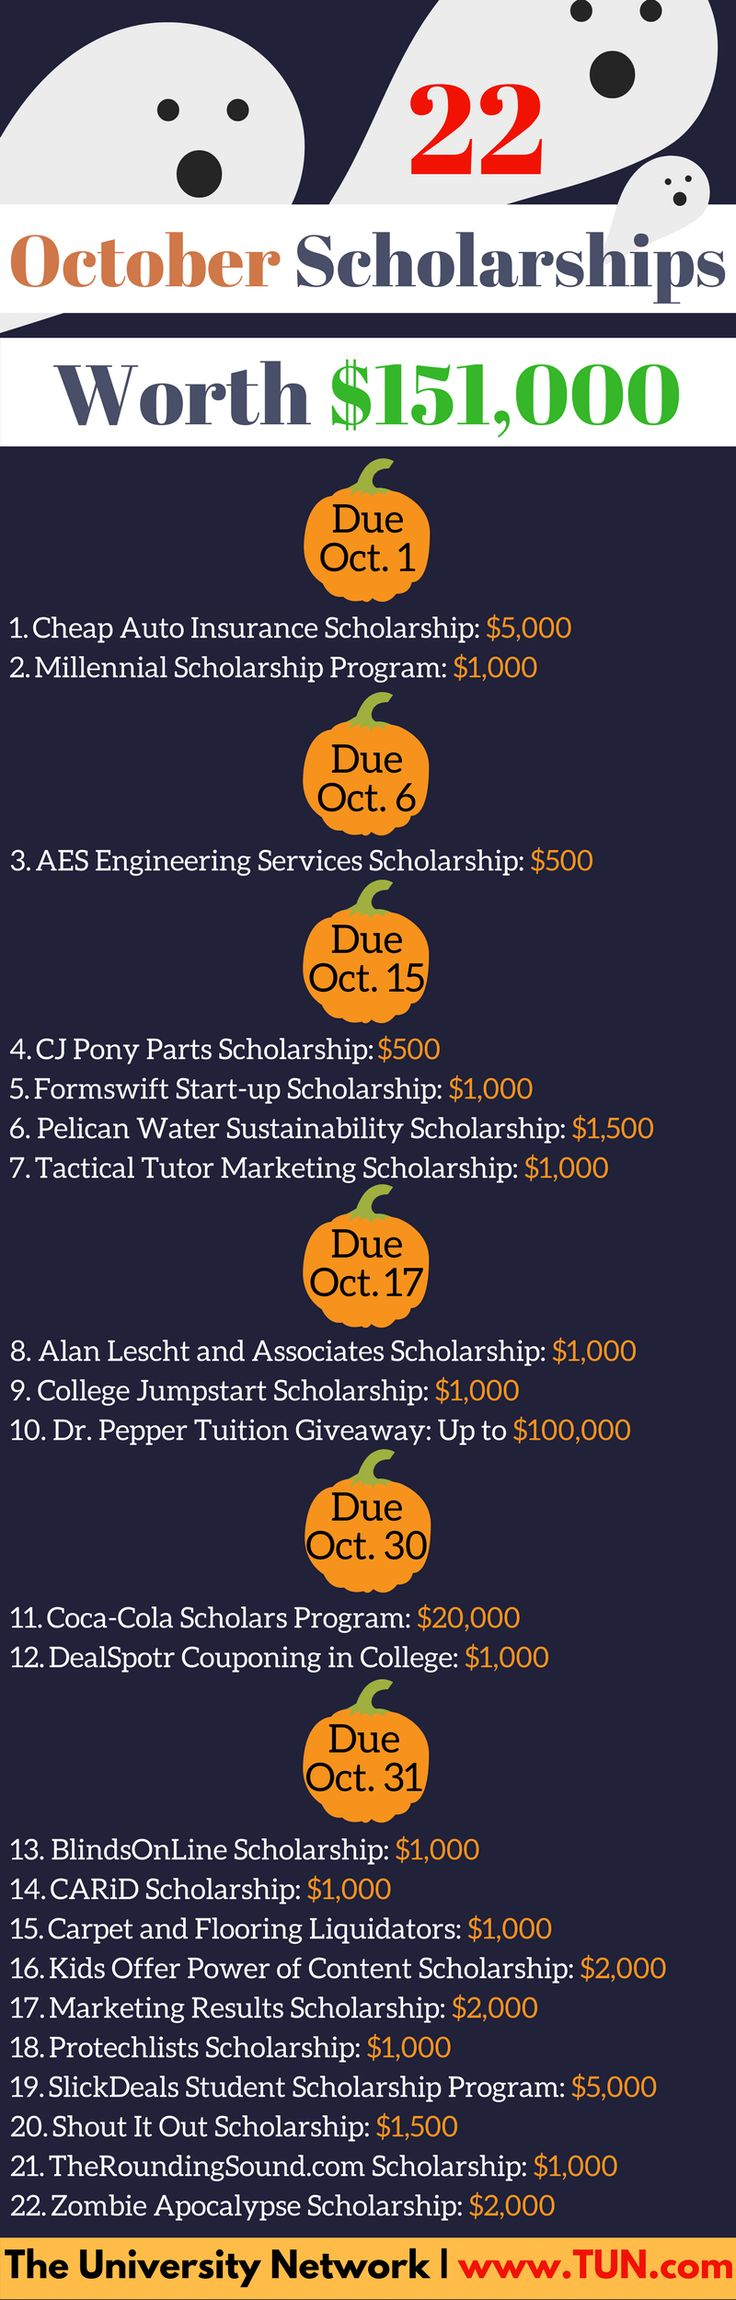 There are some big October #scholarships - don't miss out!